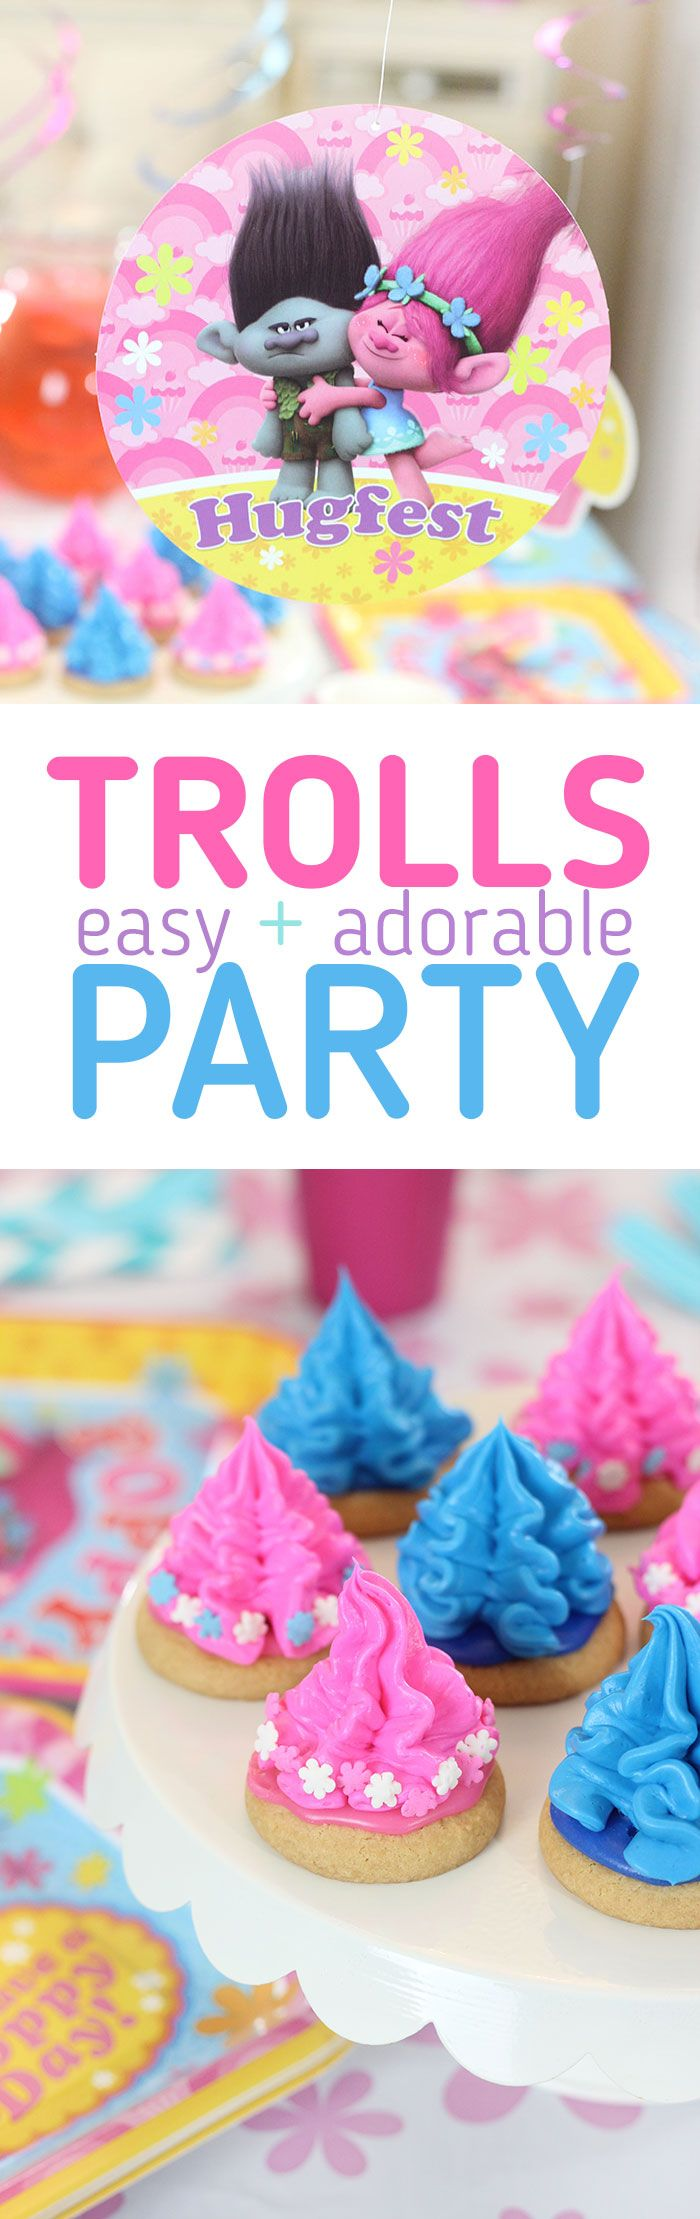 Trolls Party Ideas & Supplies. Throw the most adorable party with little effort with this tips with American Greetings Trolls party supplies available at Target. #ad